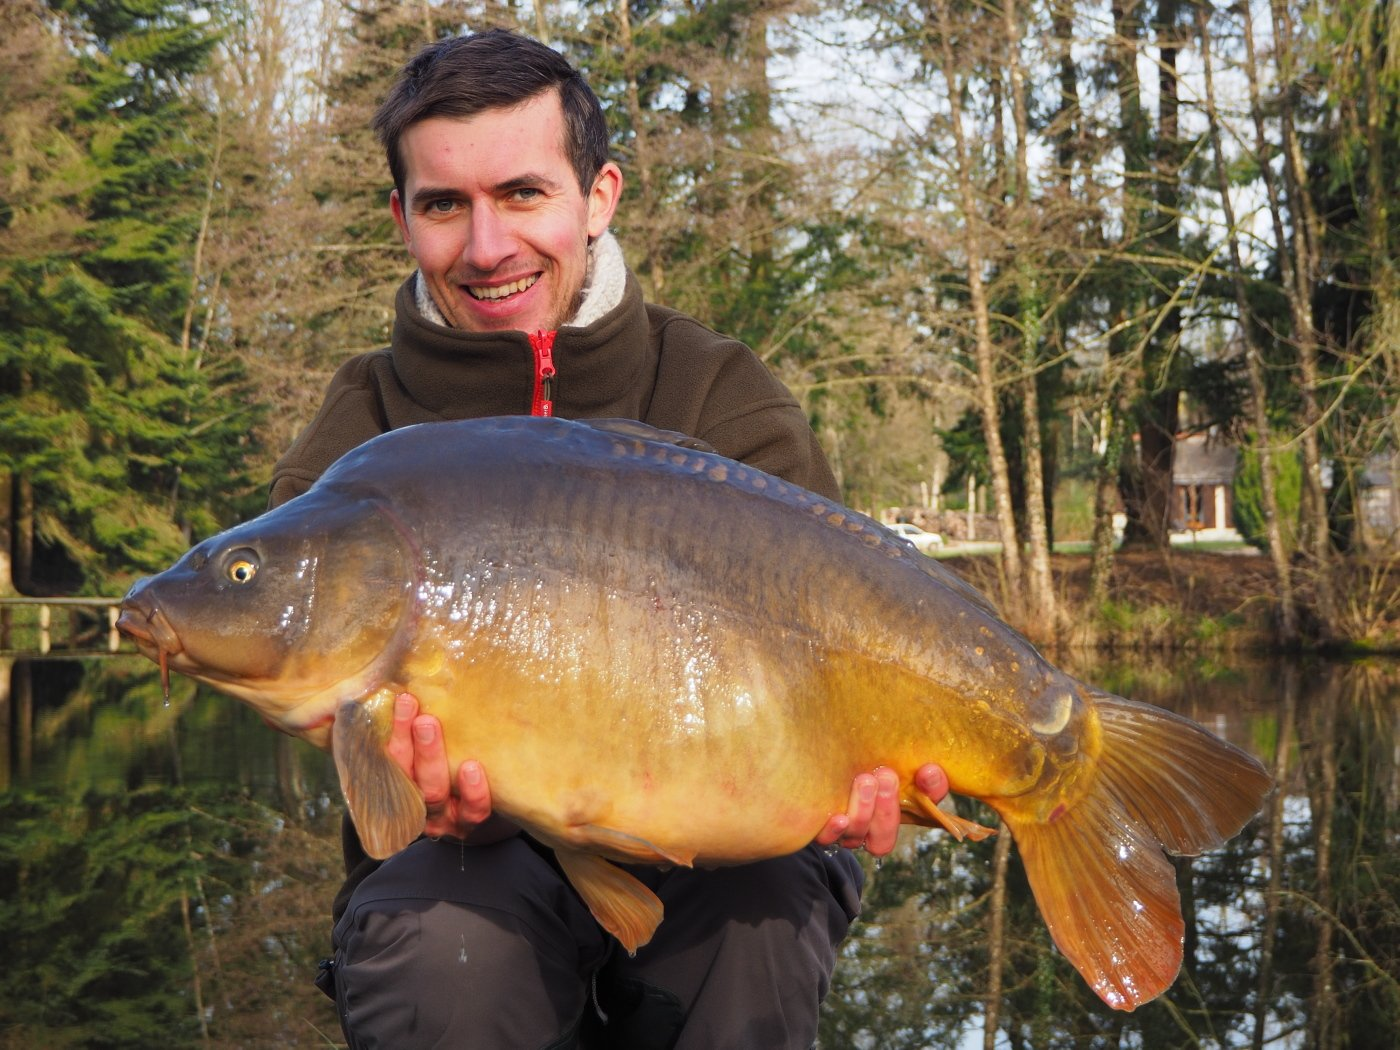 Alexandre with a 27lbs mirror carp